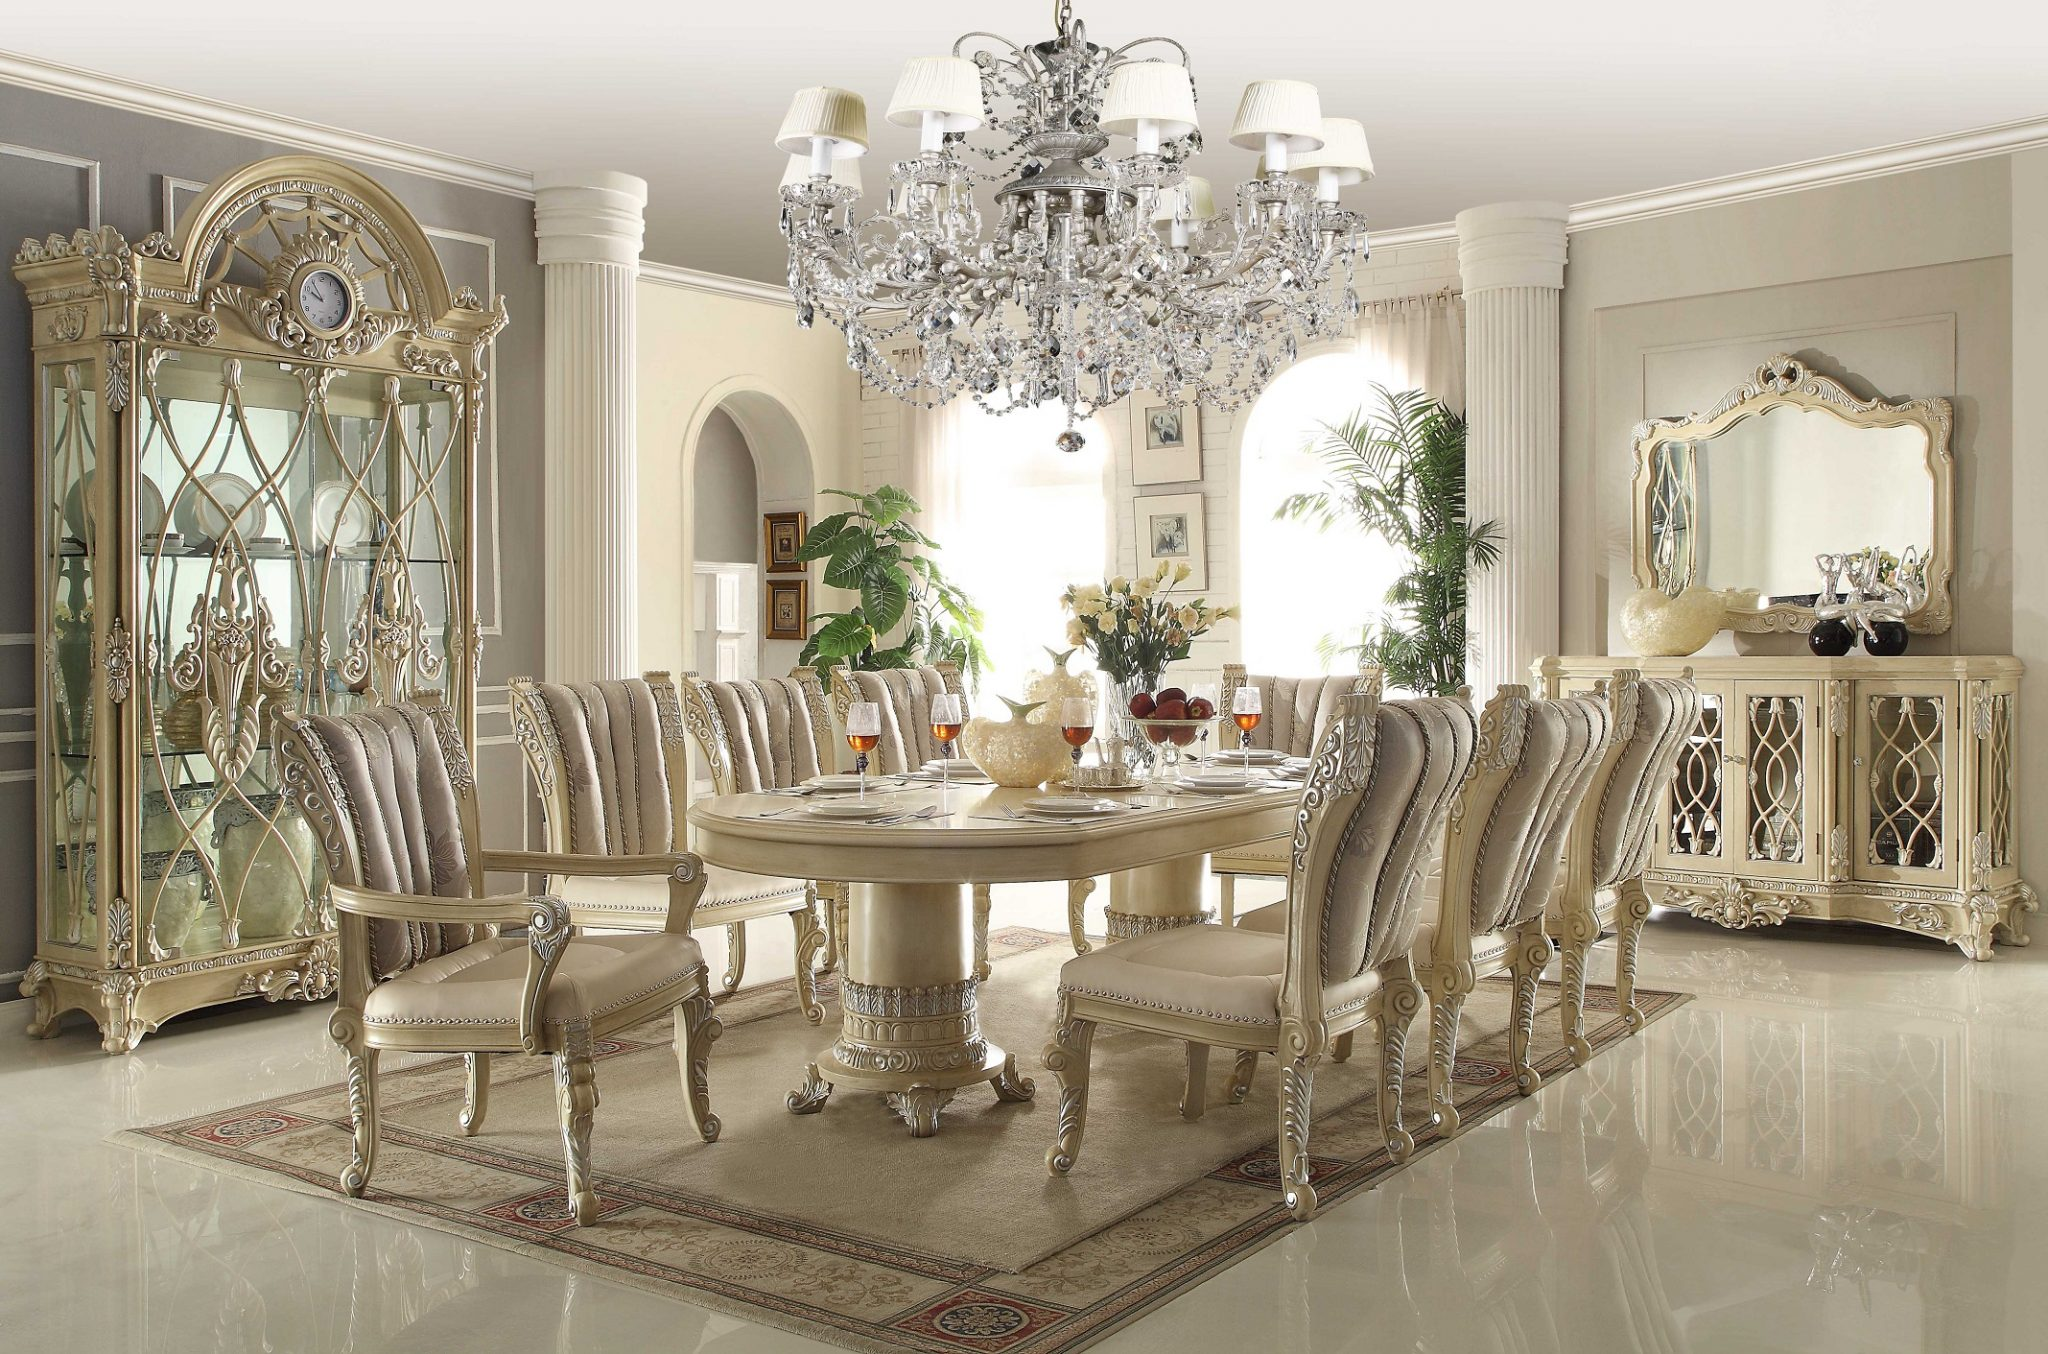 hd 5800 homey design royal dining collection set luxurious dining room set g0045 7